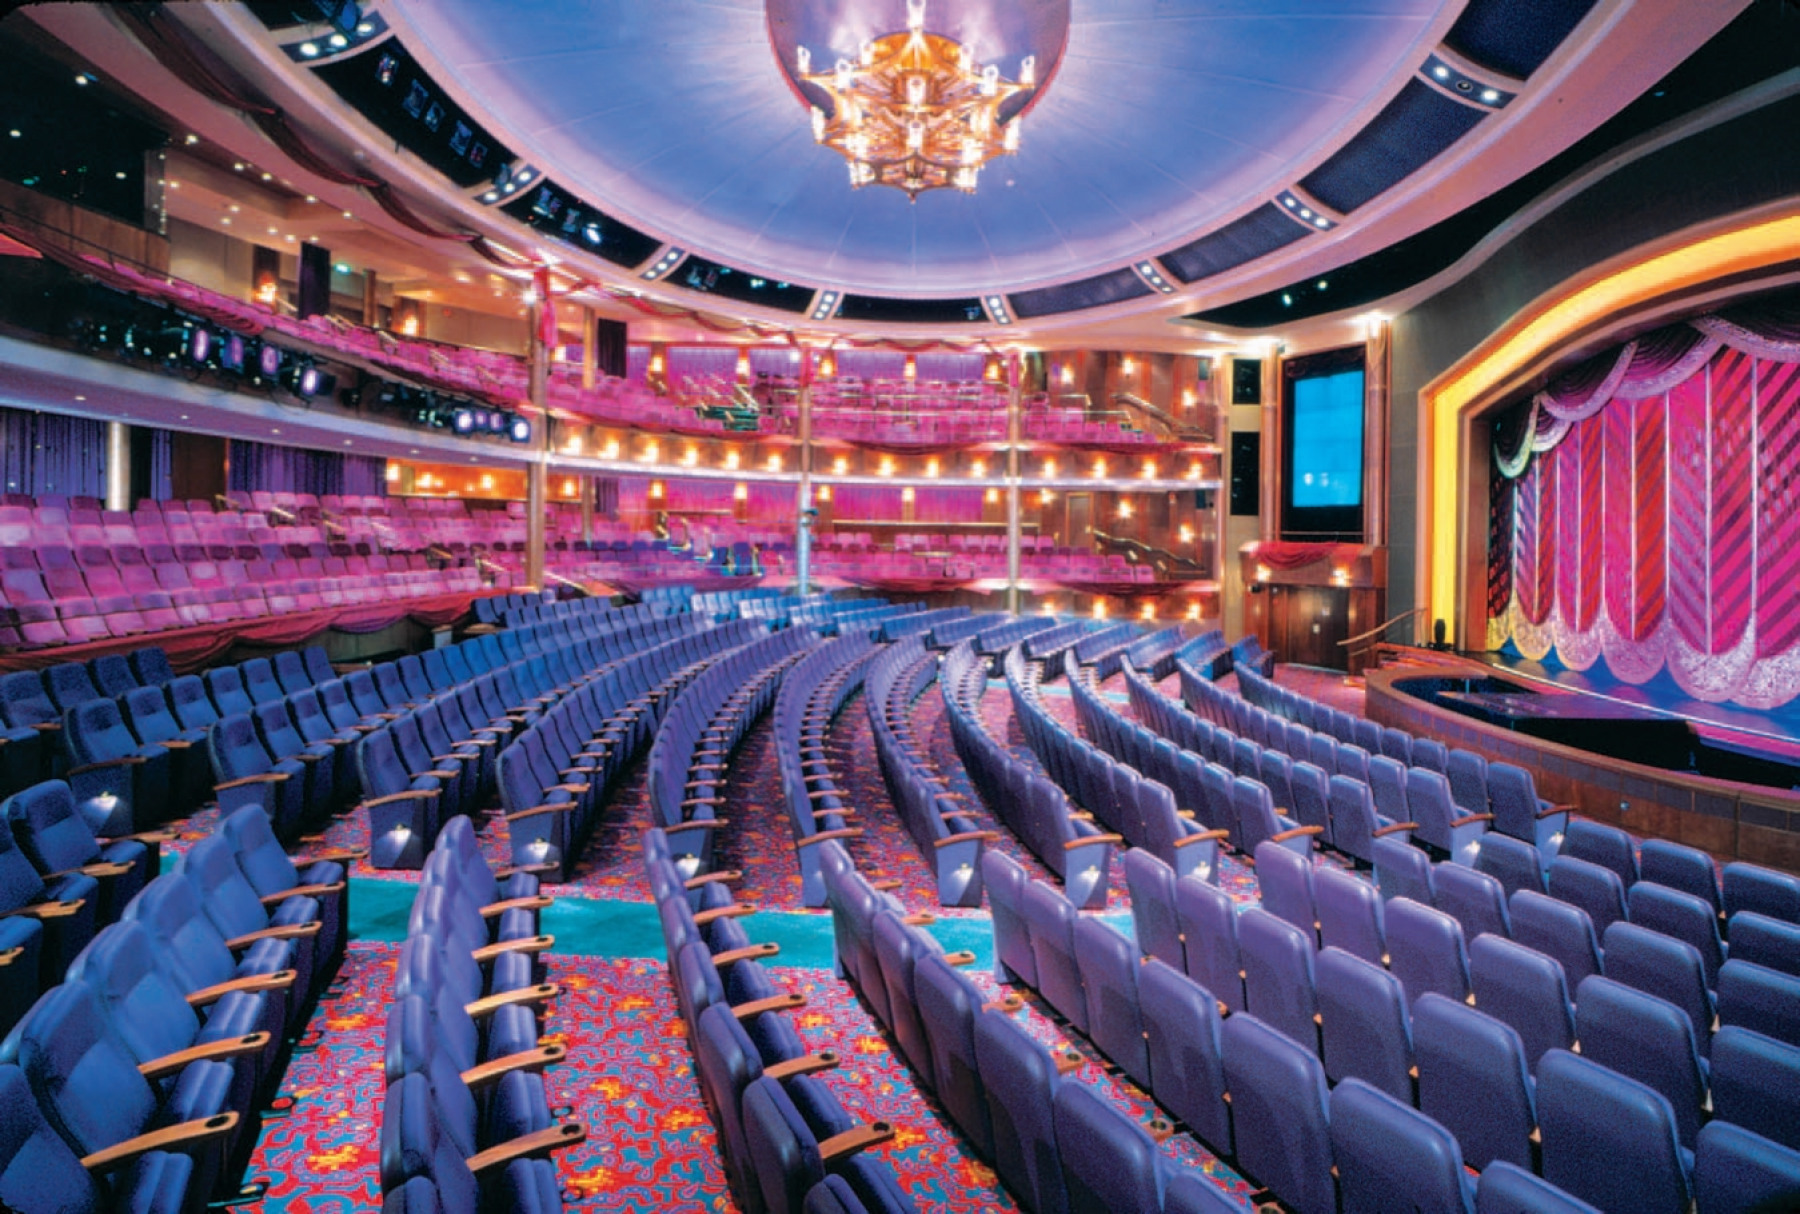 Royal Caribbean International Voyager of the Seas Interior Theater.jpg